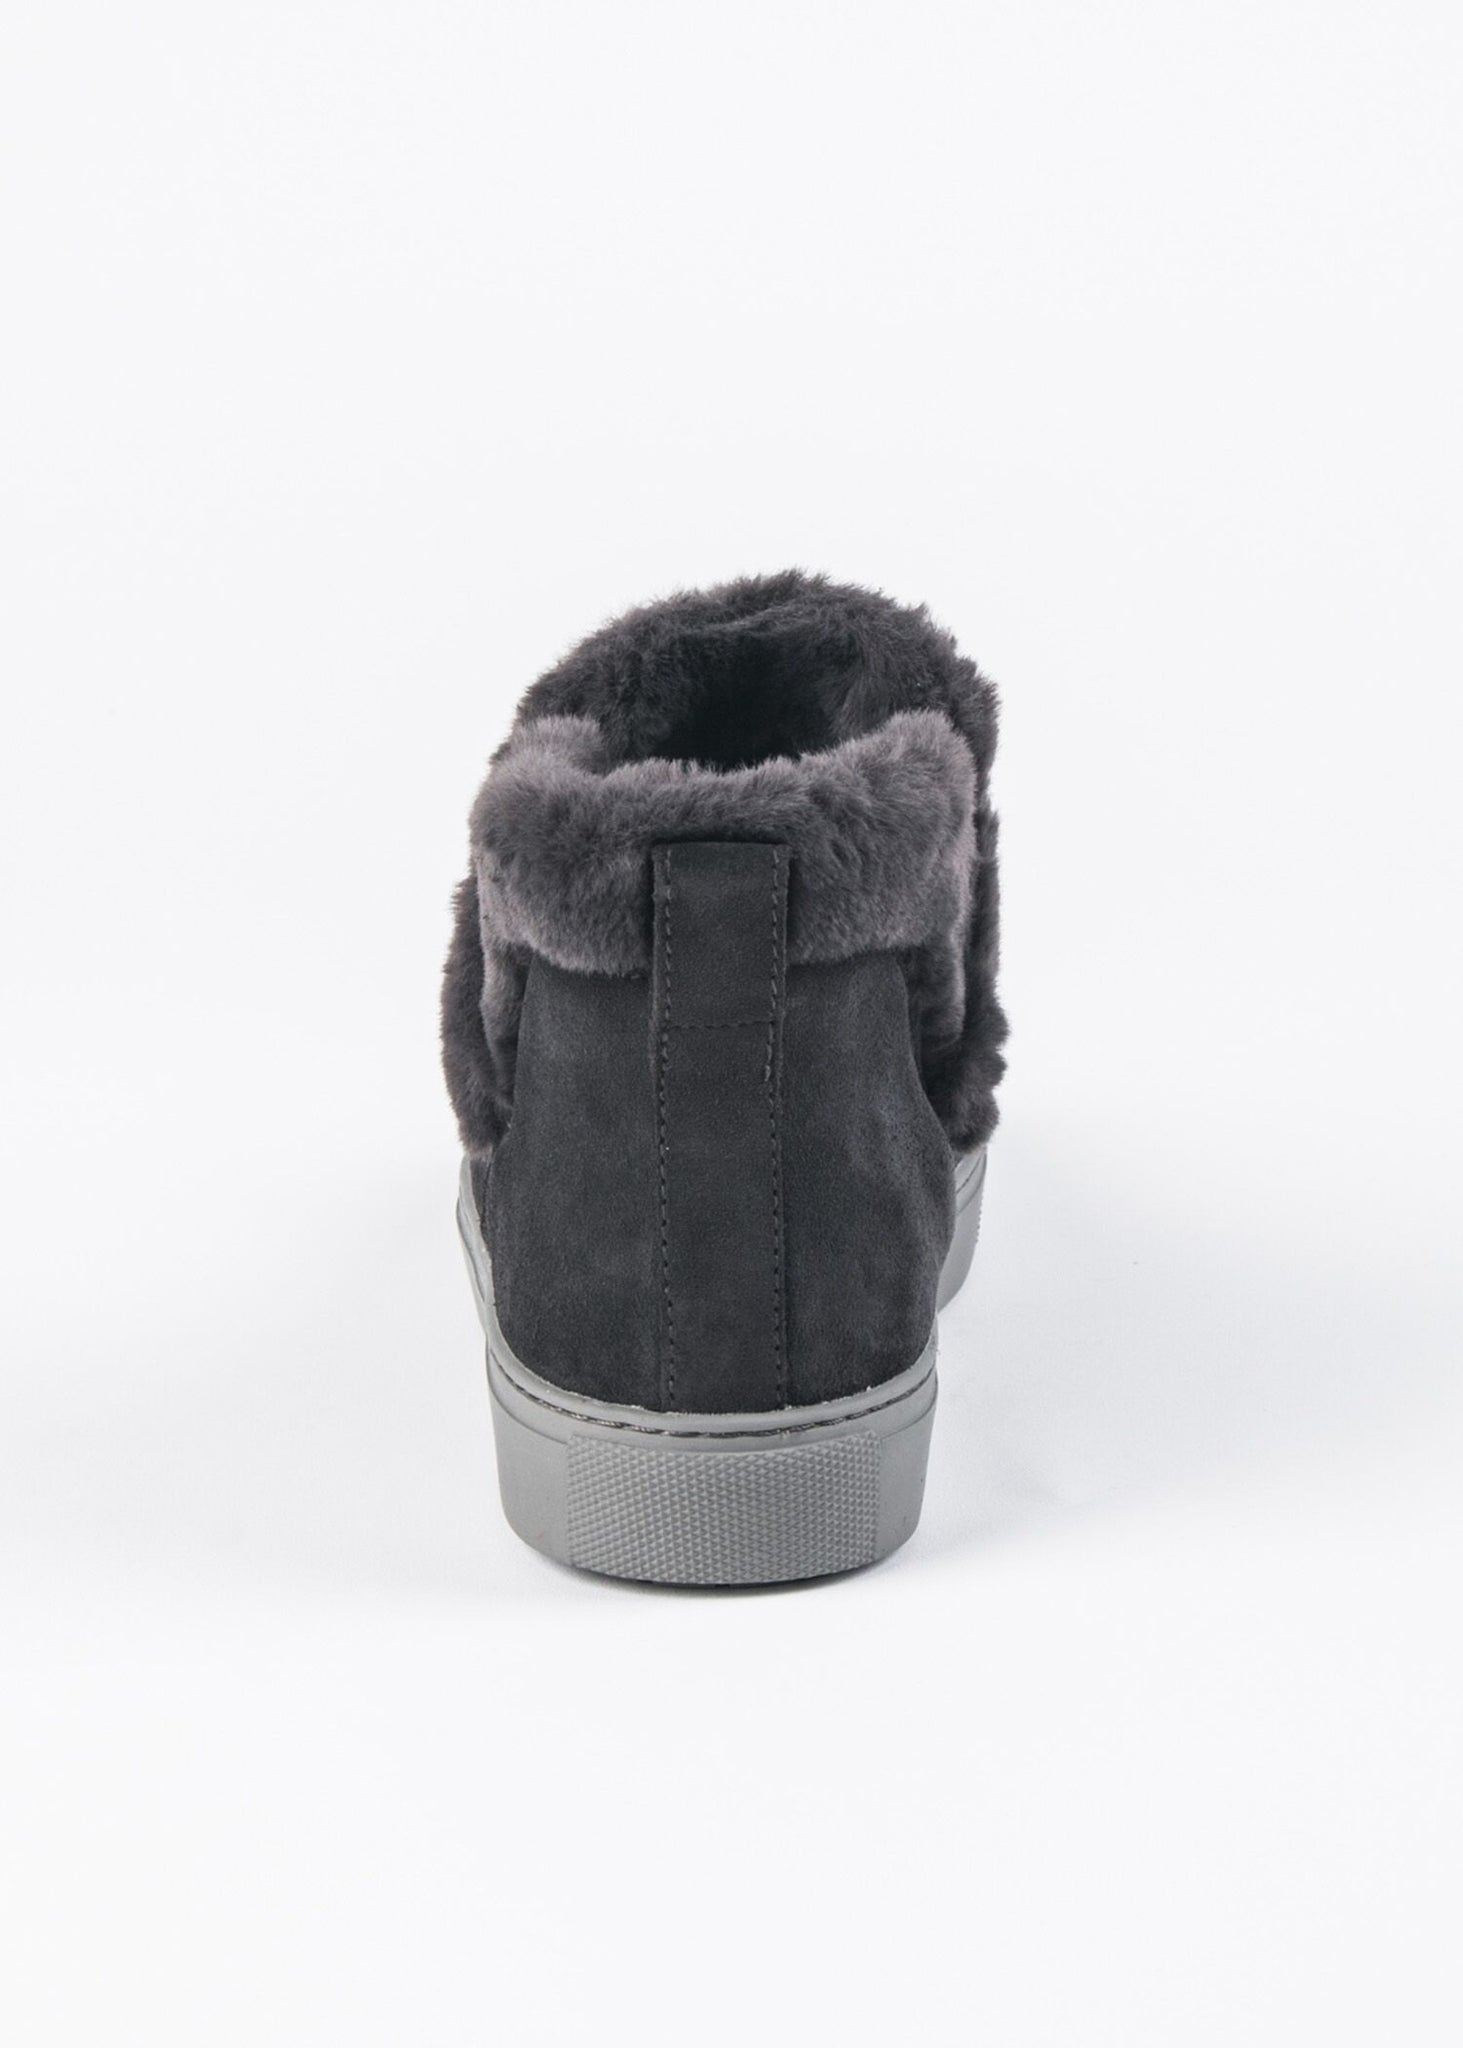 DUFFY FUR CUFF PULL ON WATERPROOF BOOT